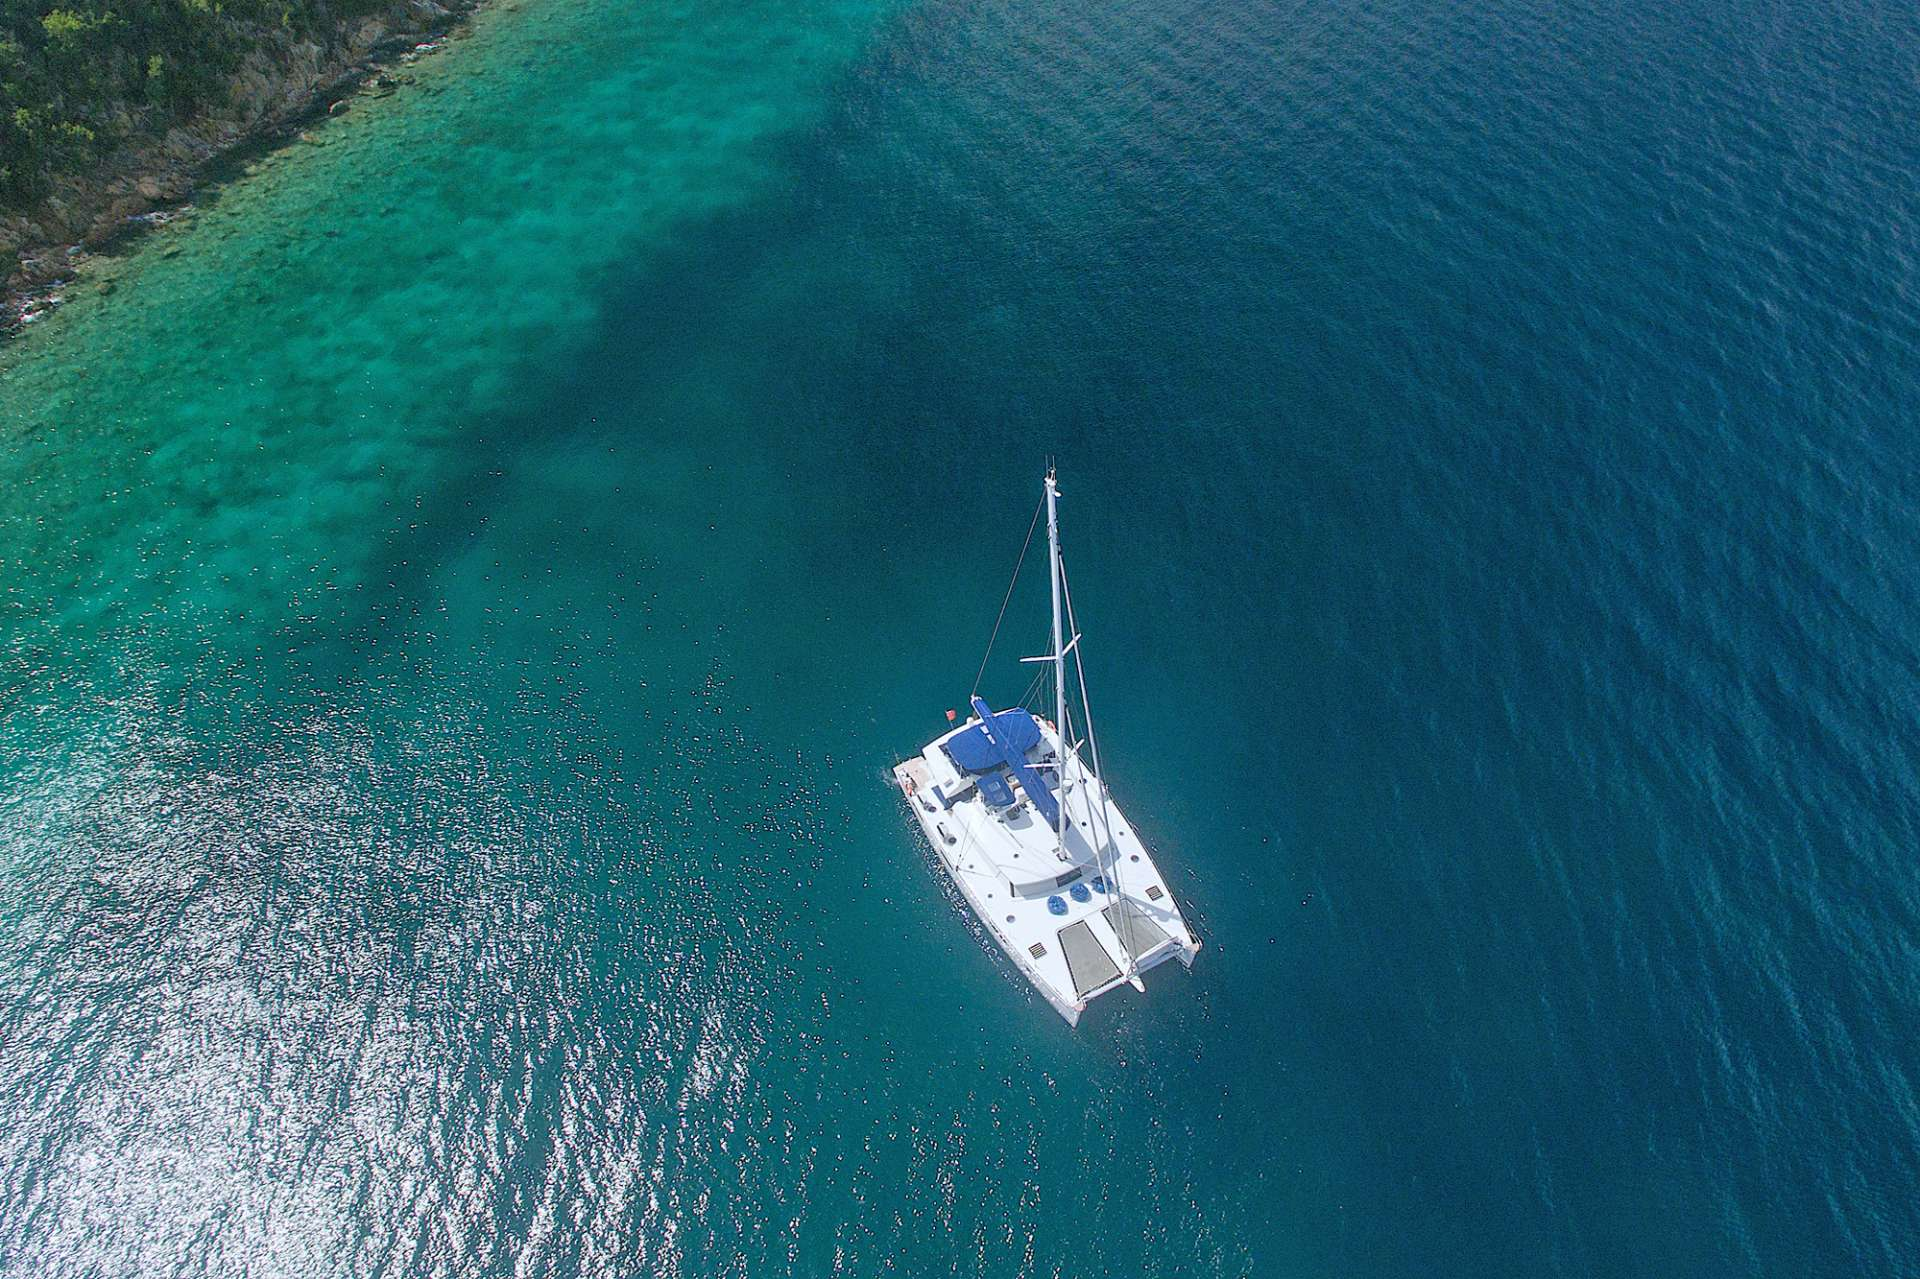 Cat Yacht 'Cat', 10 PAX, 3 Crew, 67.00 Ft, 20.00 Meters, Built 2017, Fountaine-Pajot, Refit Year New larger tender June 2019